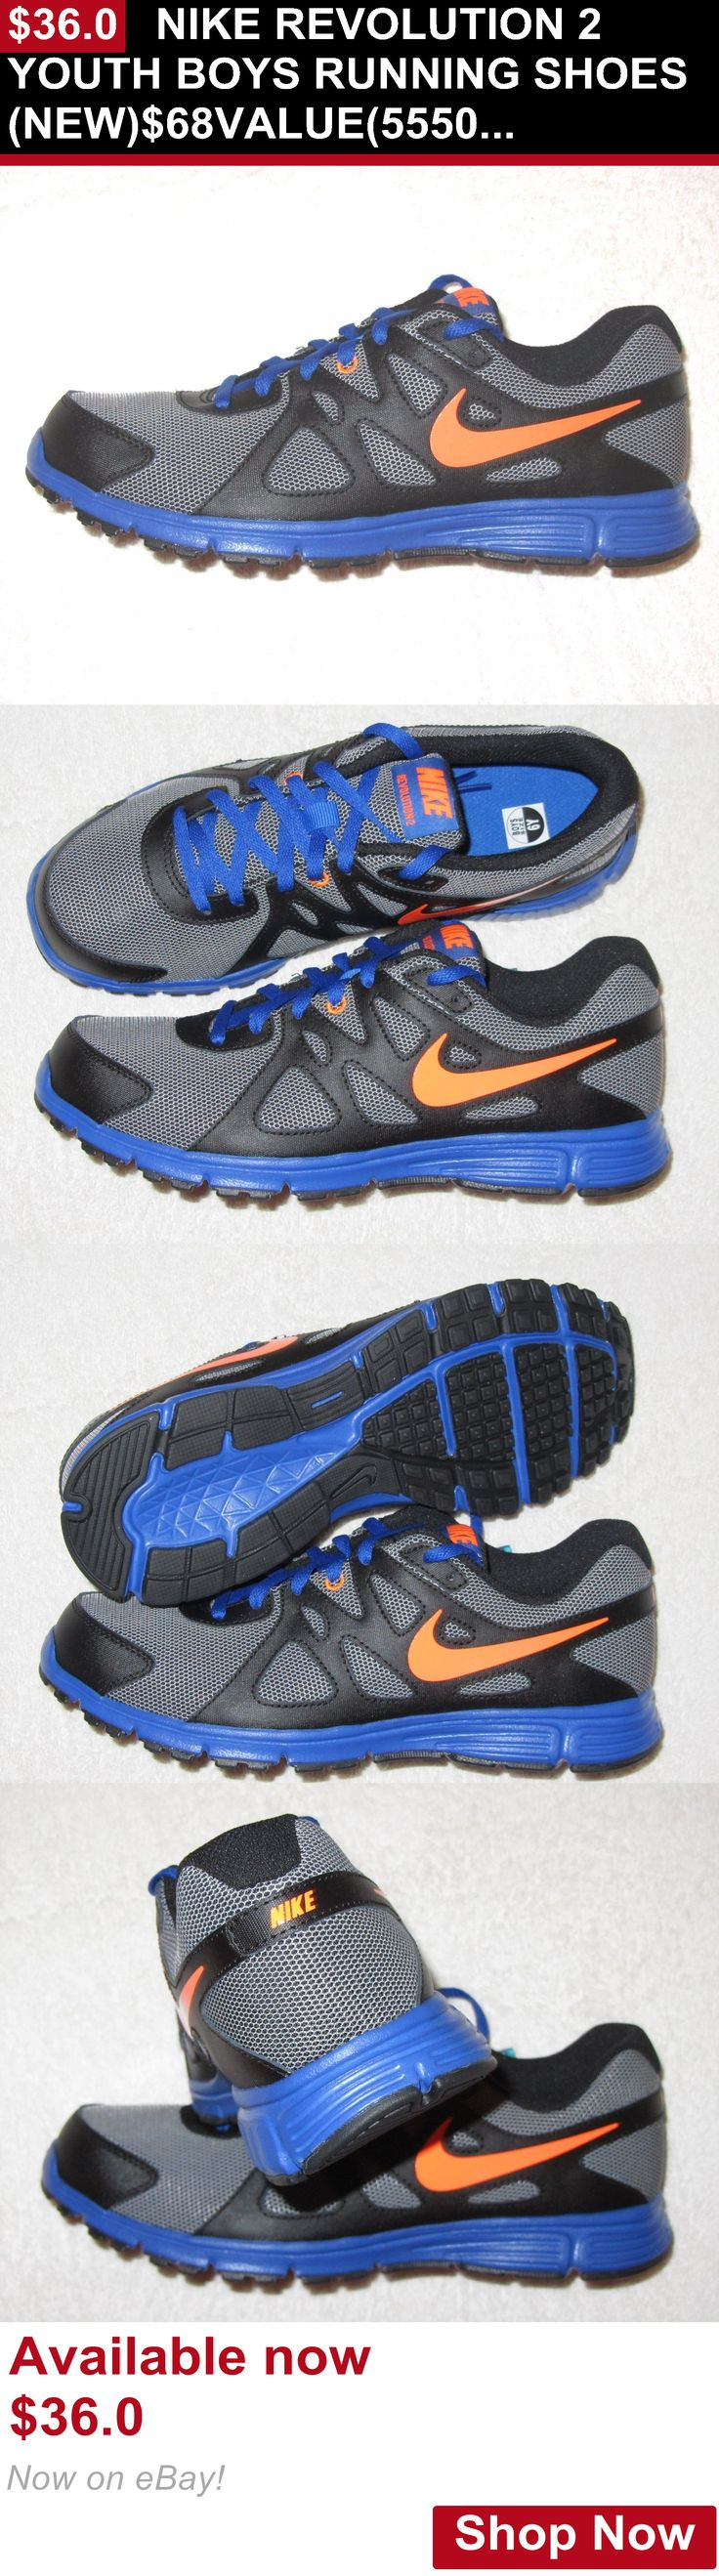 Children boys clothing shoes and accessories: Nike Revolution 2 Youth Boys Running Shoes(New)$68Value(5550820101) BUY IT NOW ONLY: $36.0